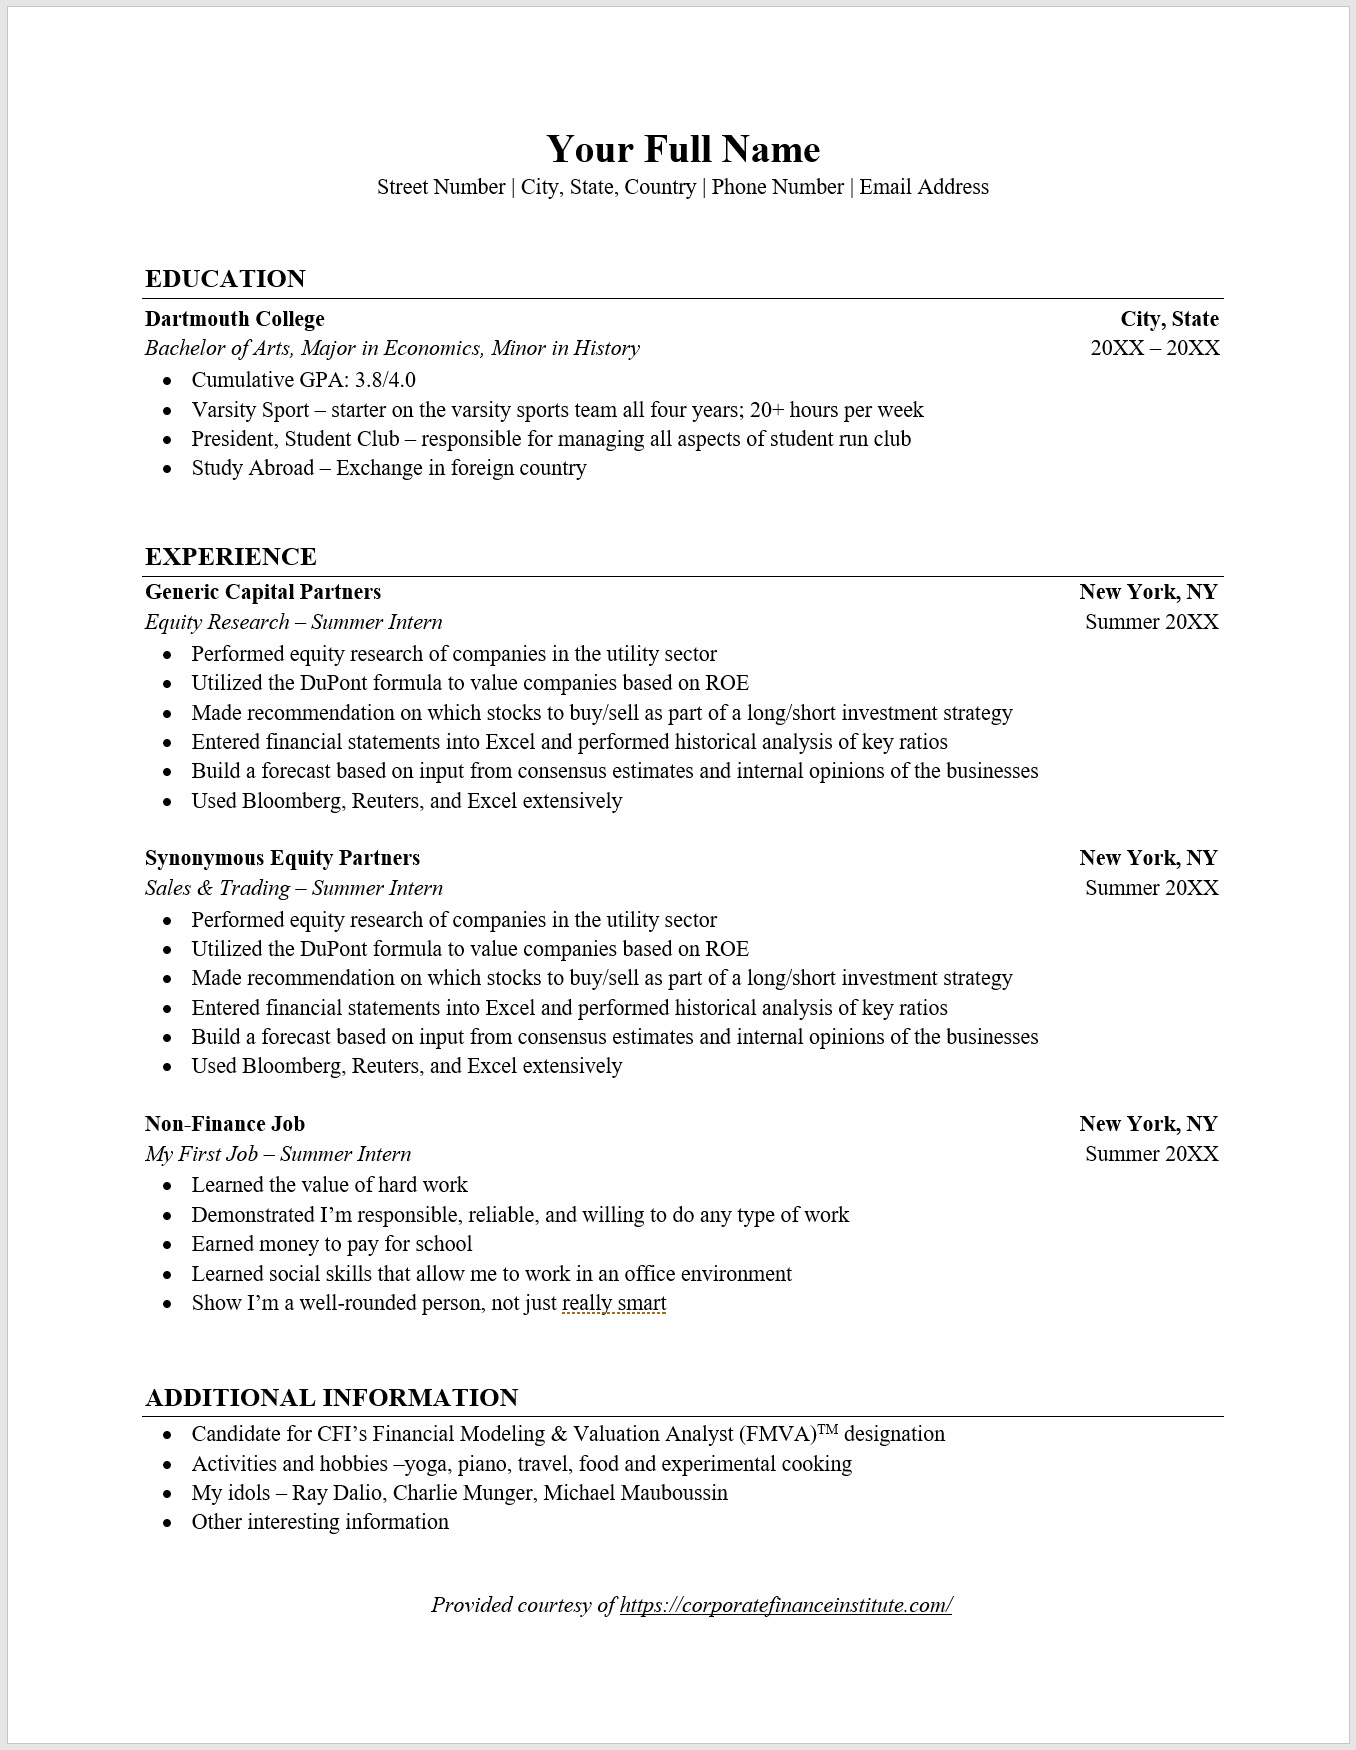 How To List Degree On Resume